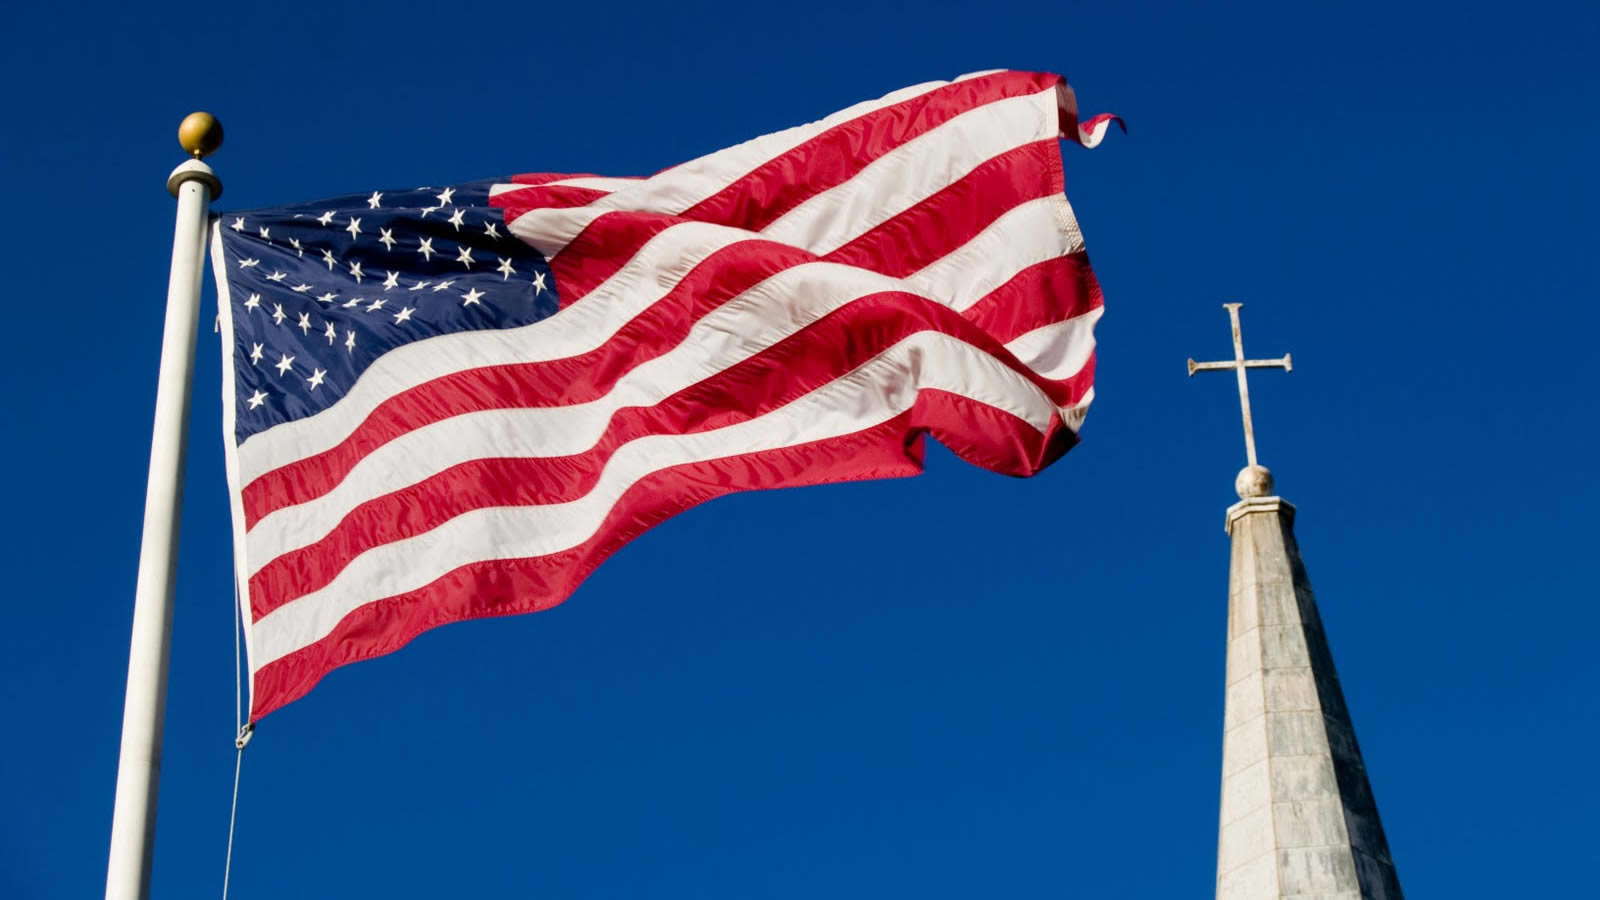 United States flag and Church steeple cross